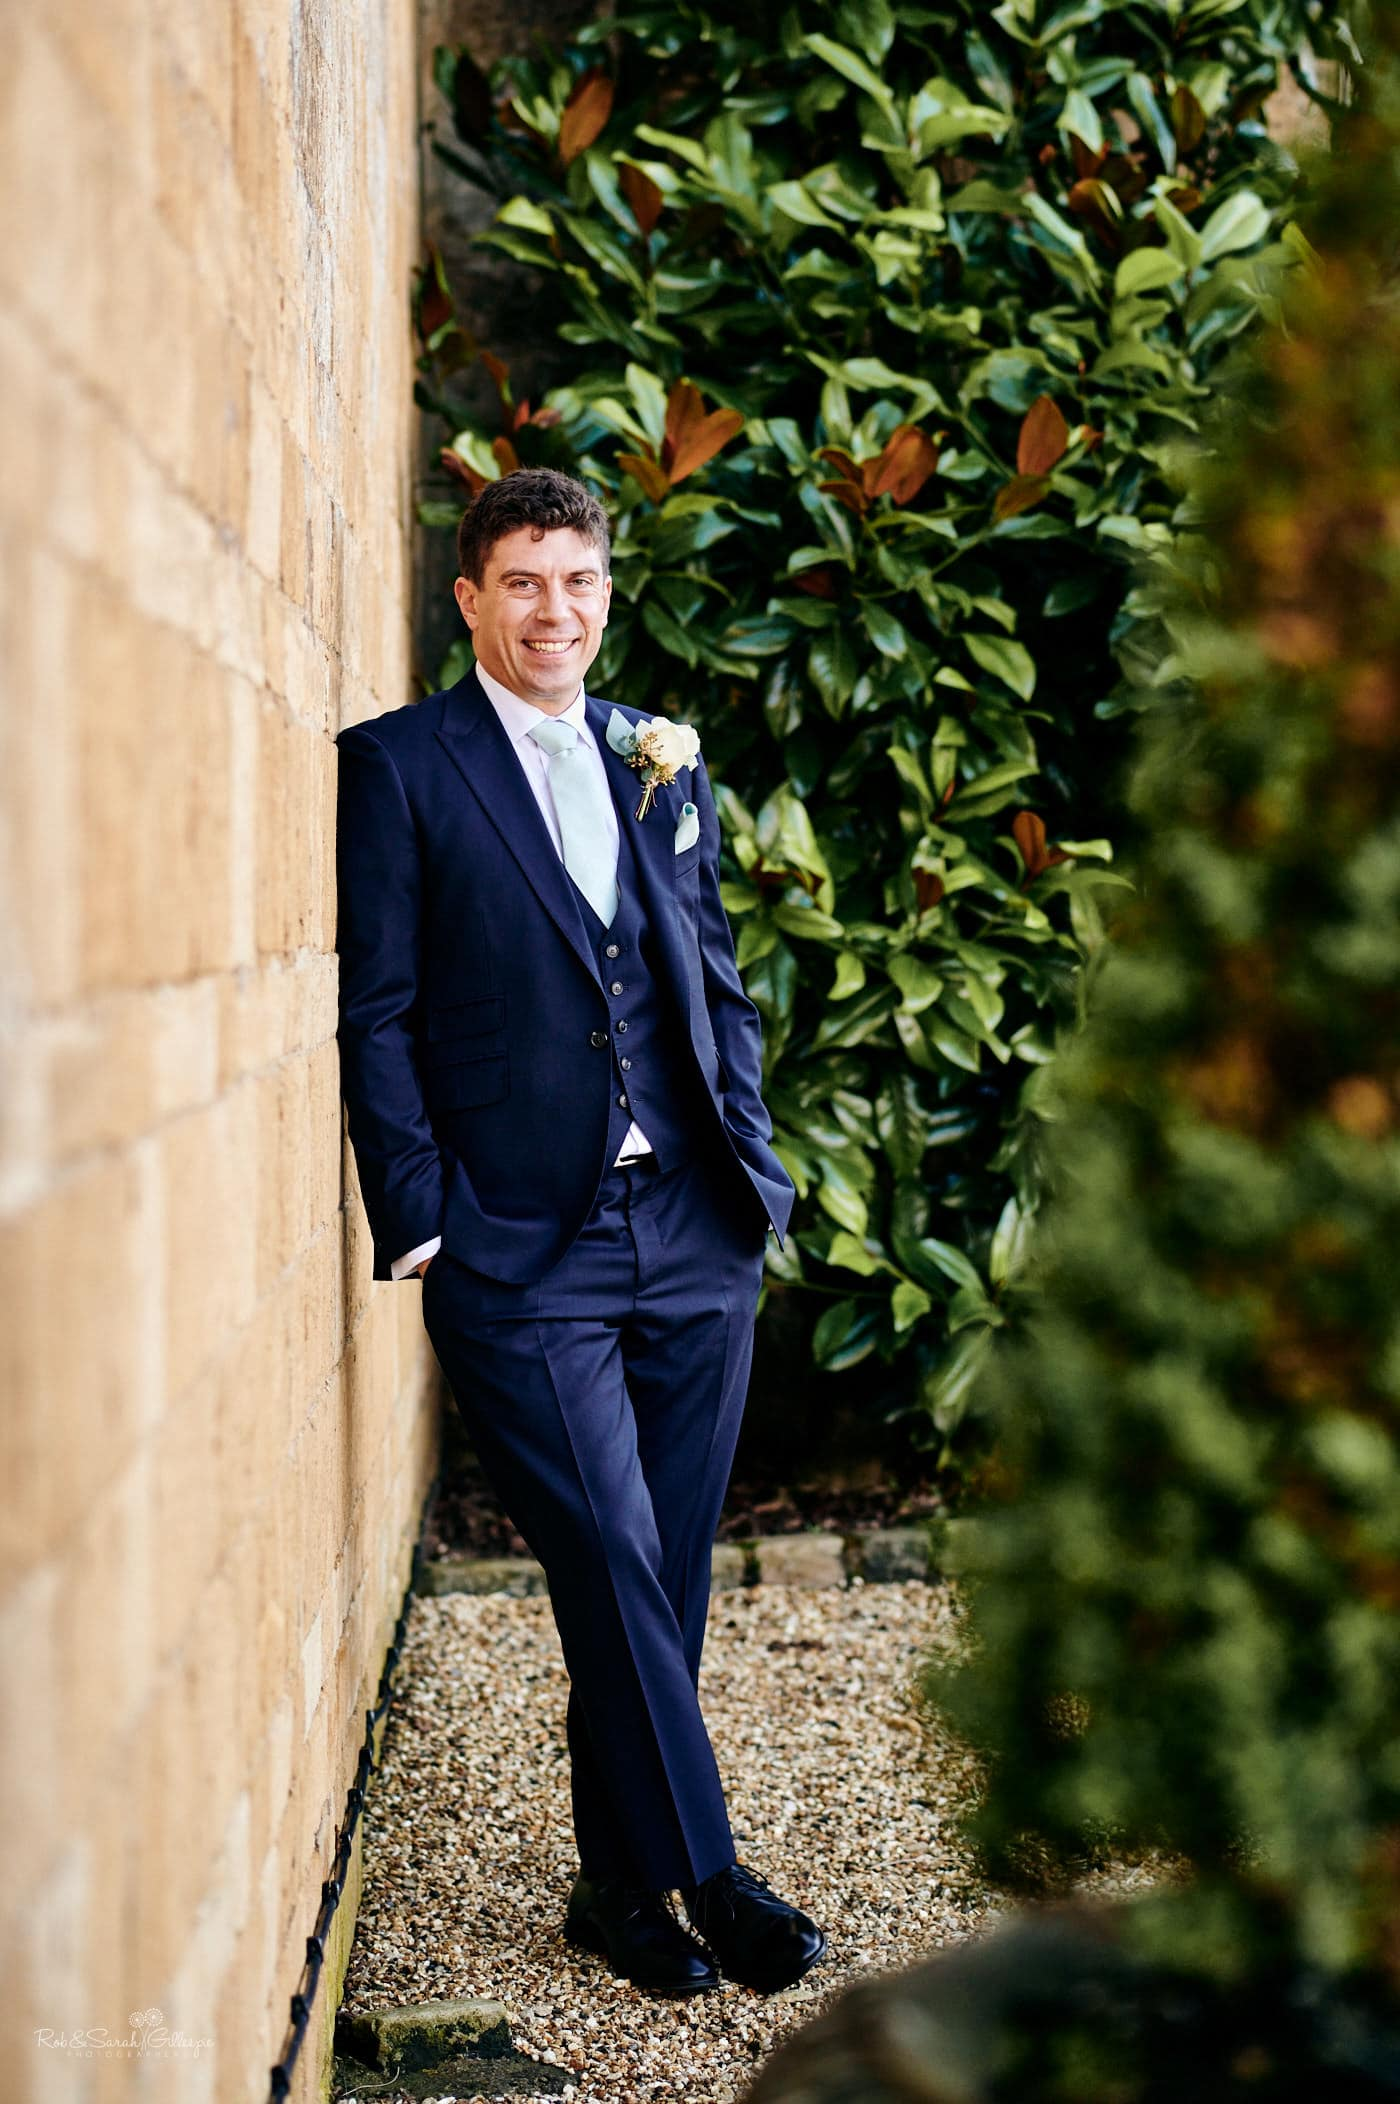 Groom portrait at Lapstone Barn in the Cotswolds